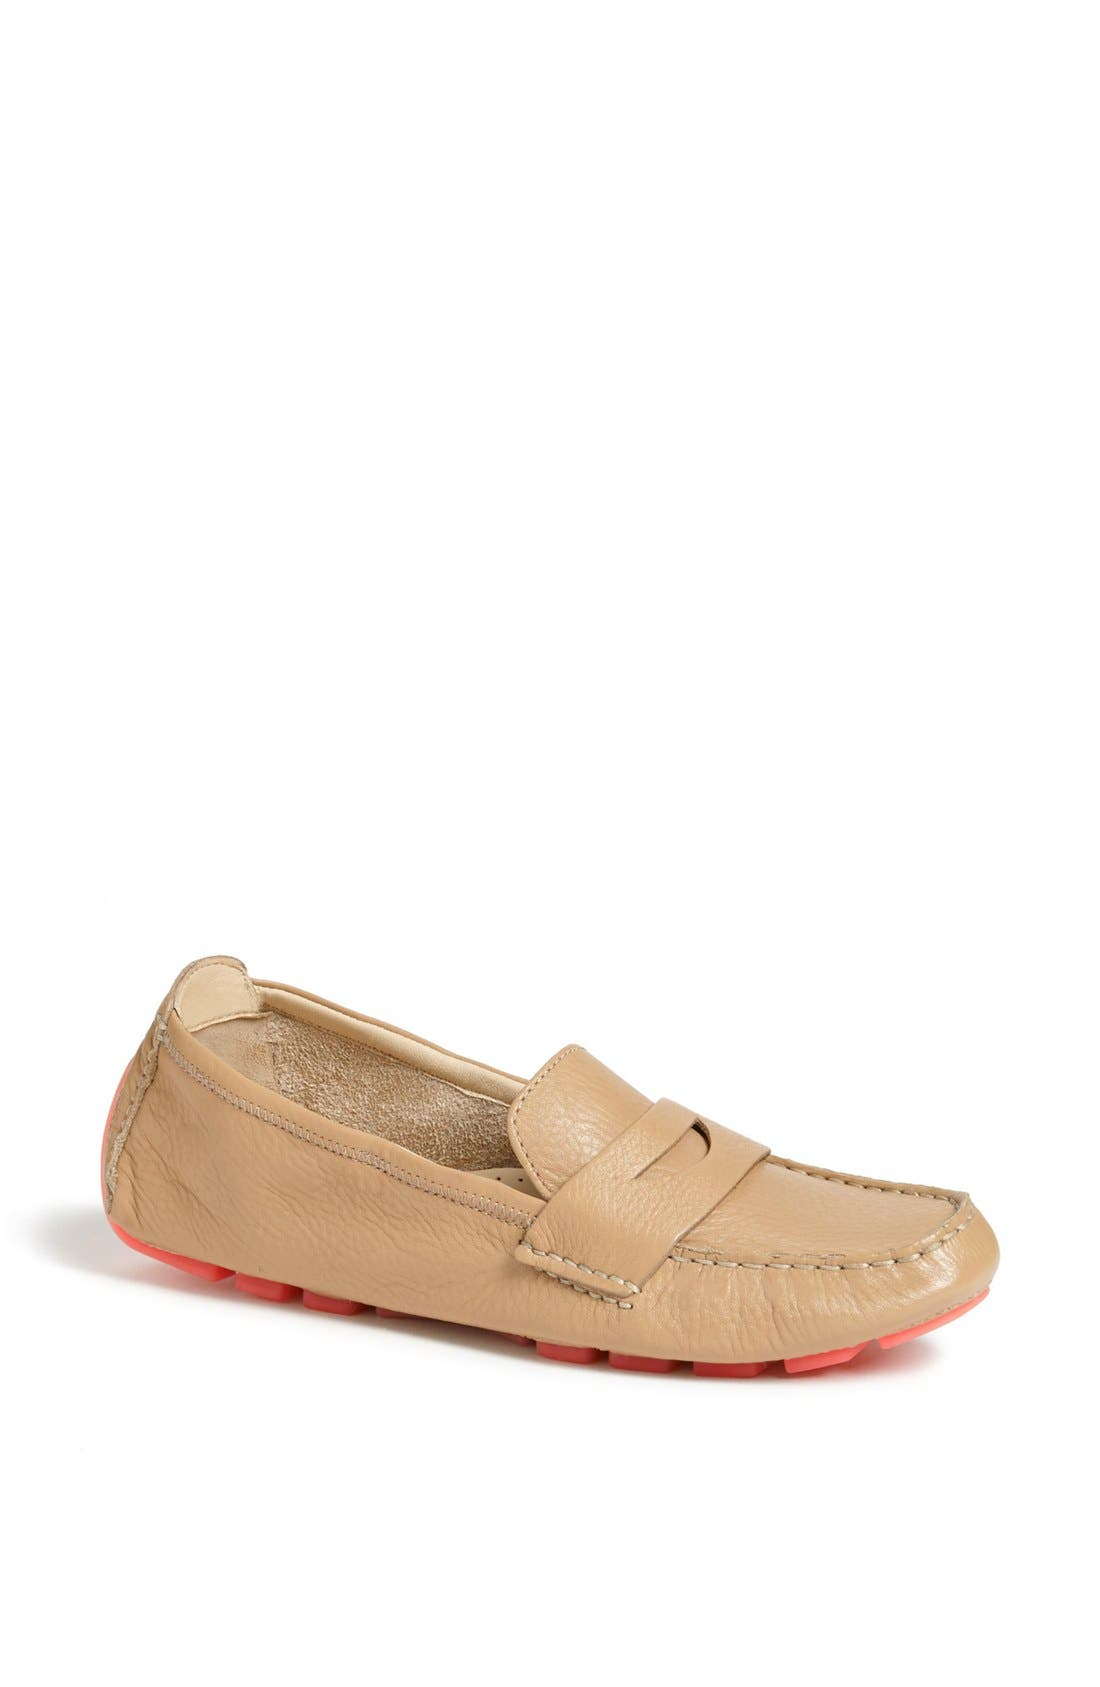 Alternate Image 1 Selected - Cole Haan 'Sadie Deconstructed' Moccasin